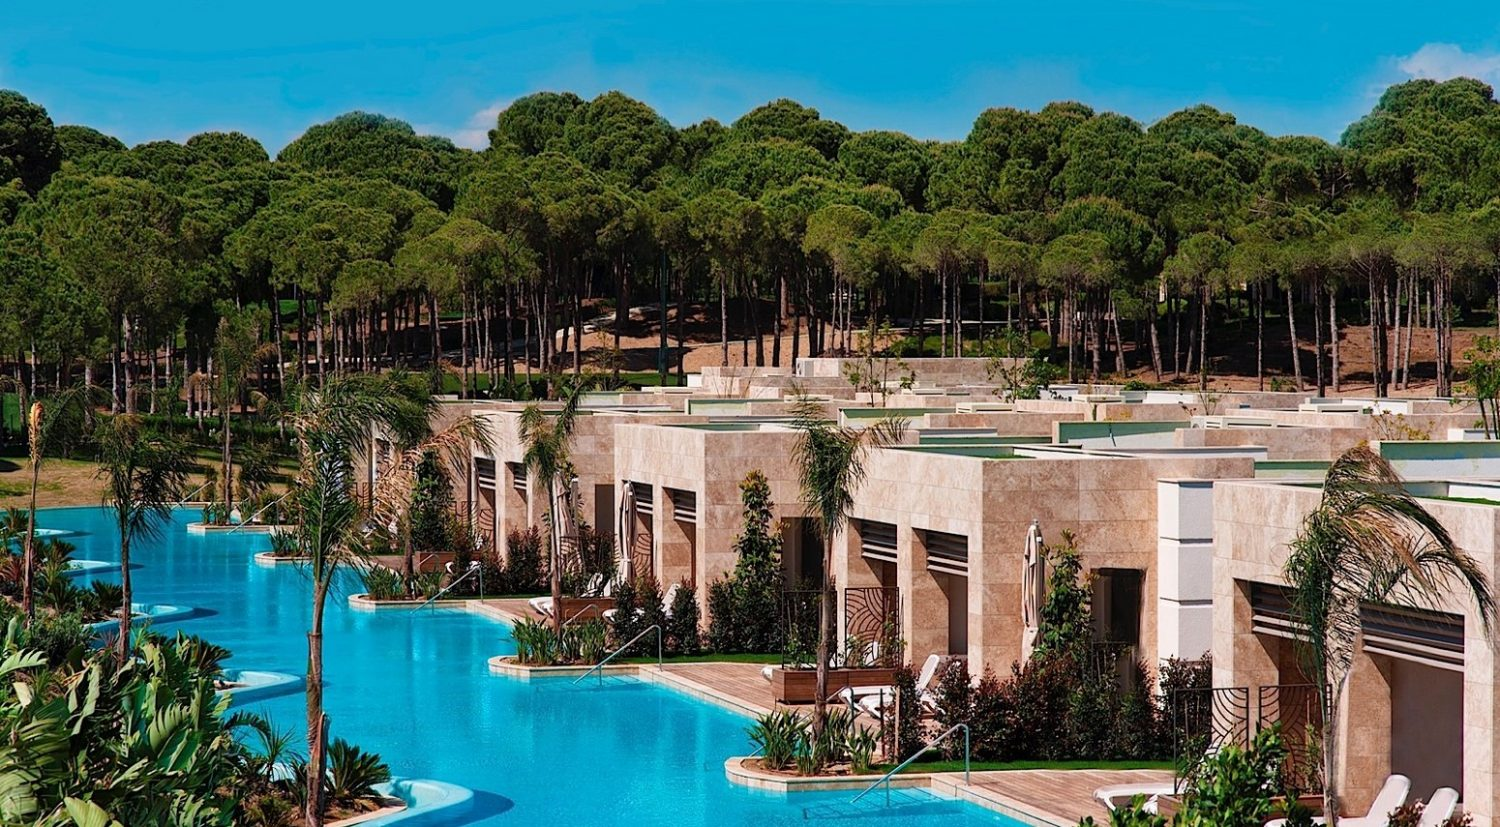 корпуса отеля Regnum Carya Golf Resort & Spa